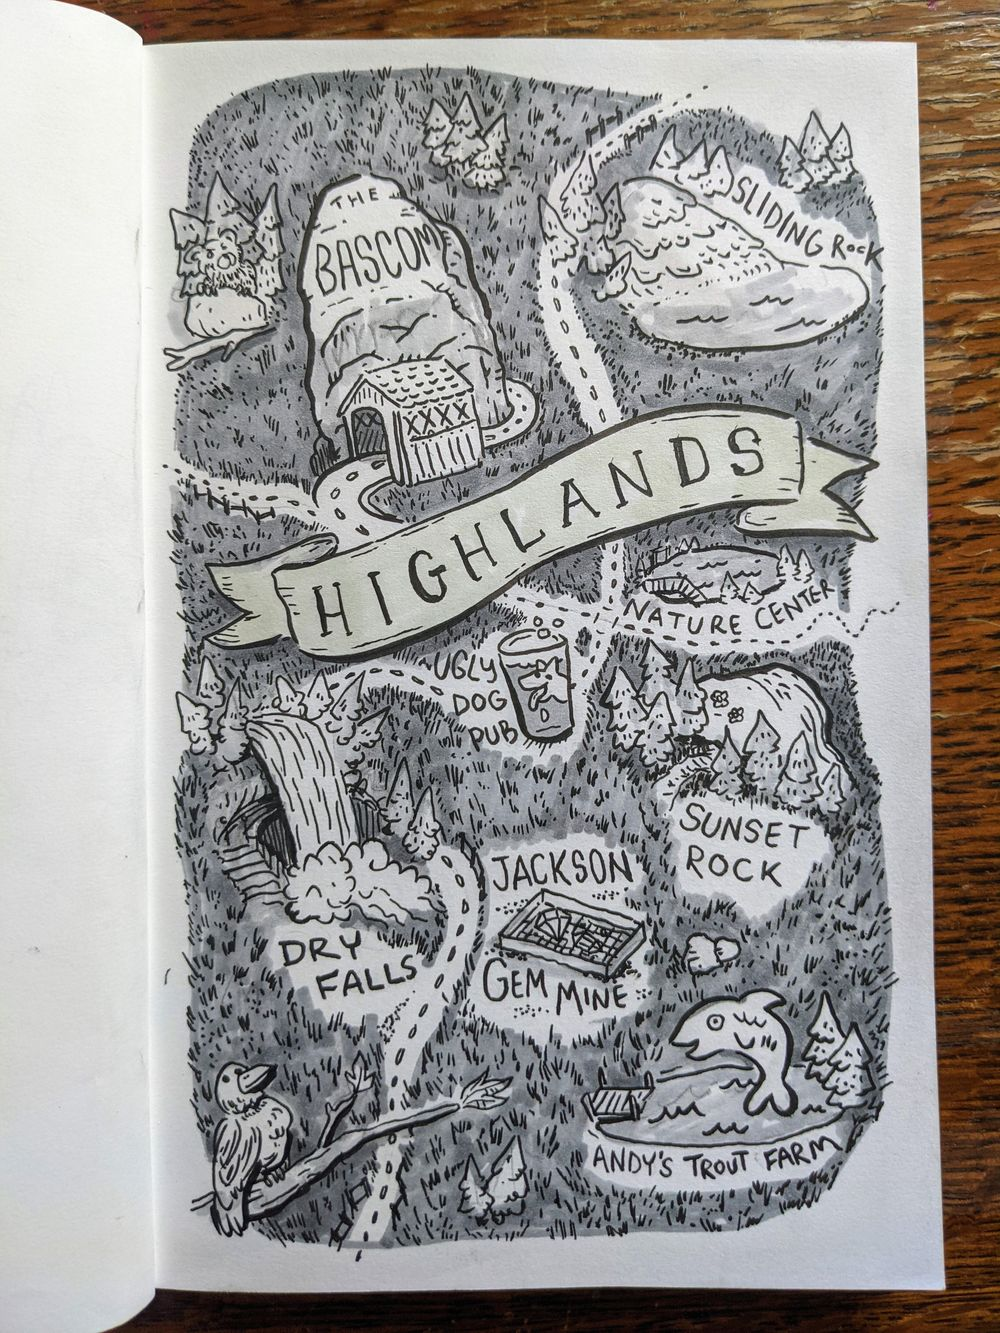 Map of Highlands - image 1 - student project